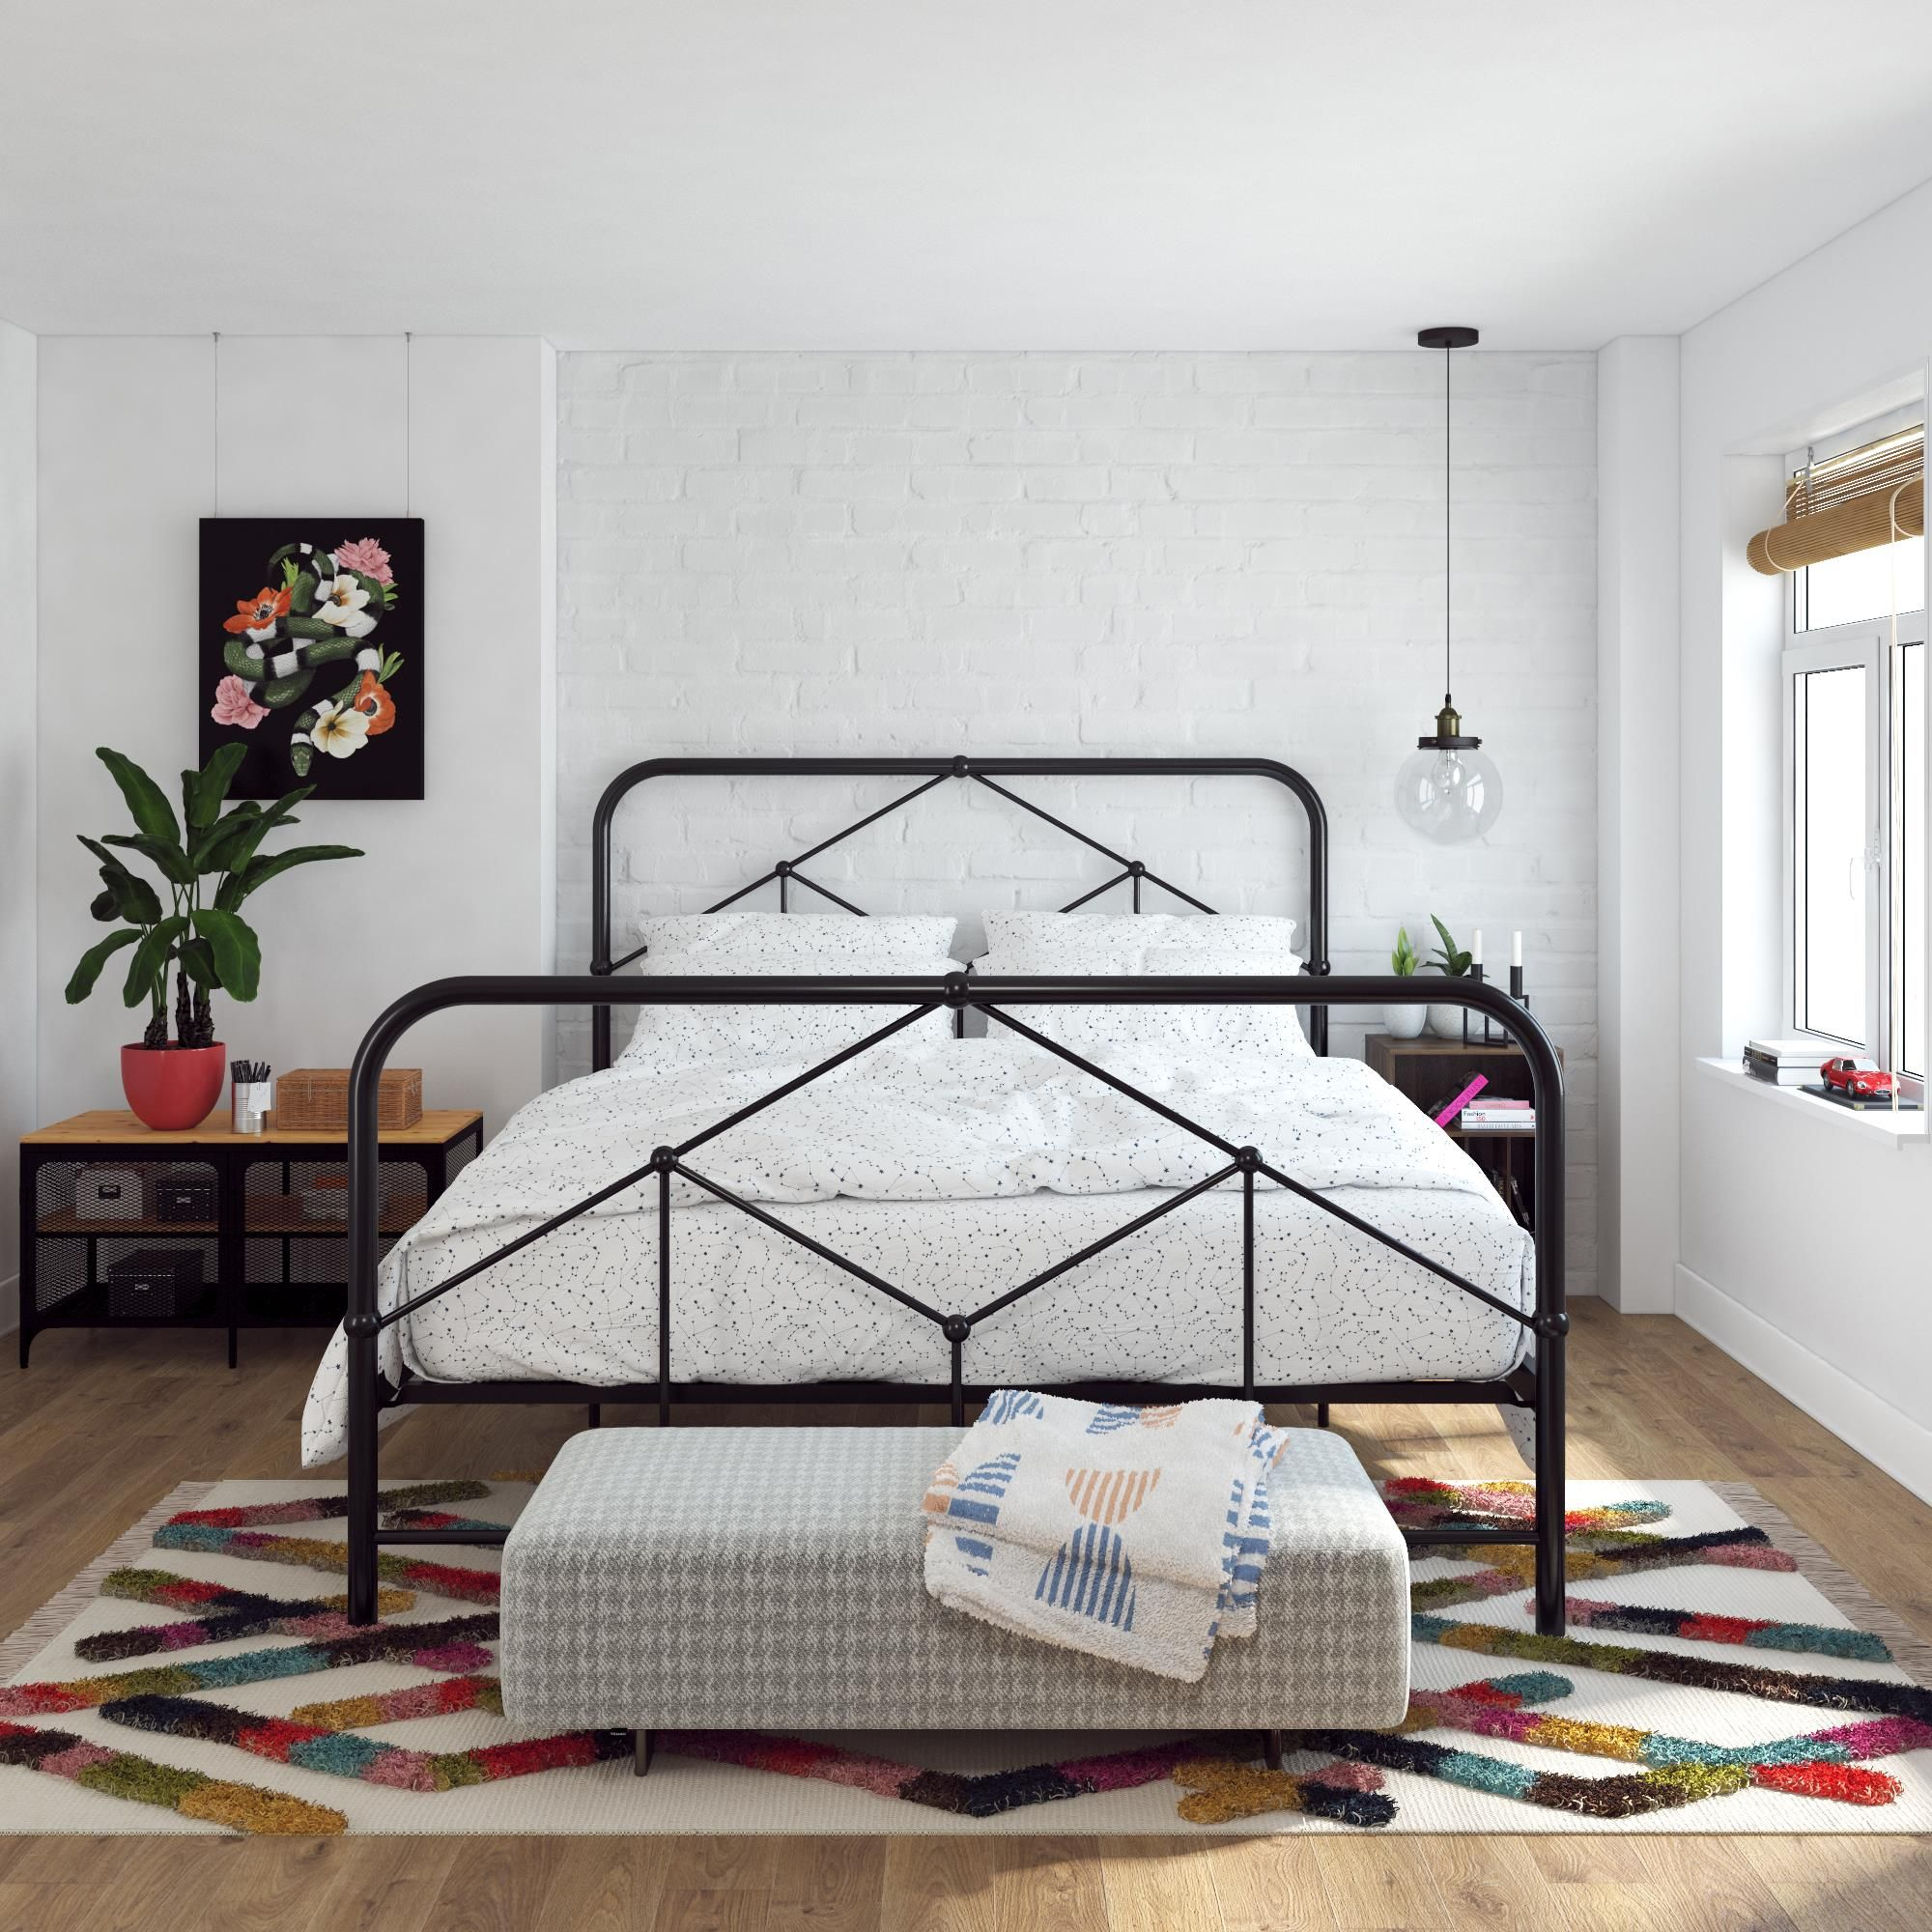 Home In 2020 With Images King Bed Frame Black Bed Frame